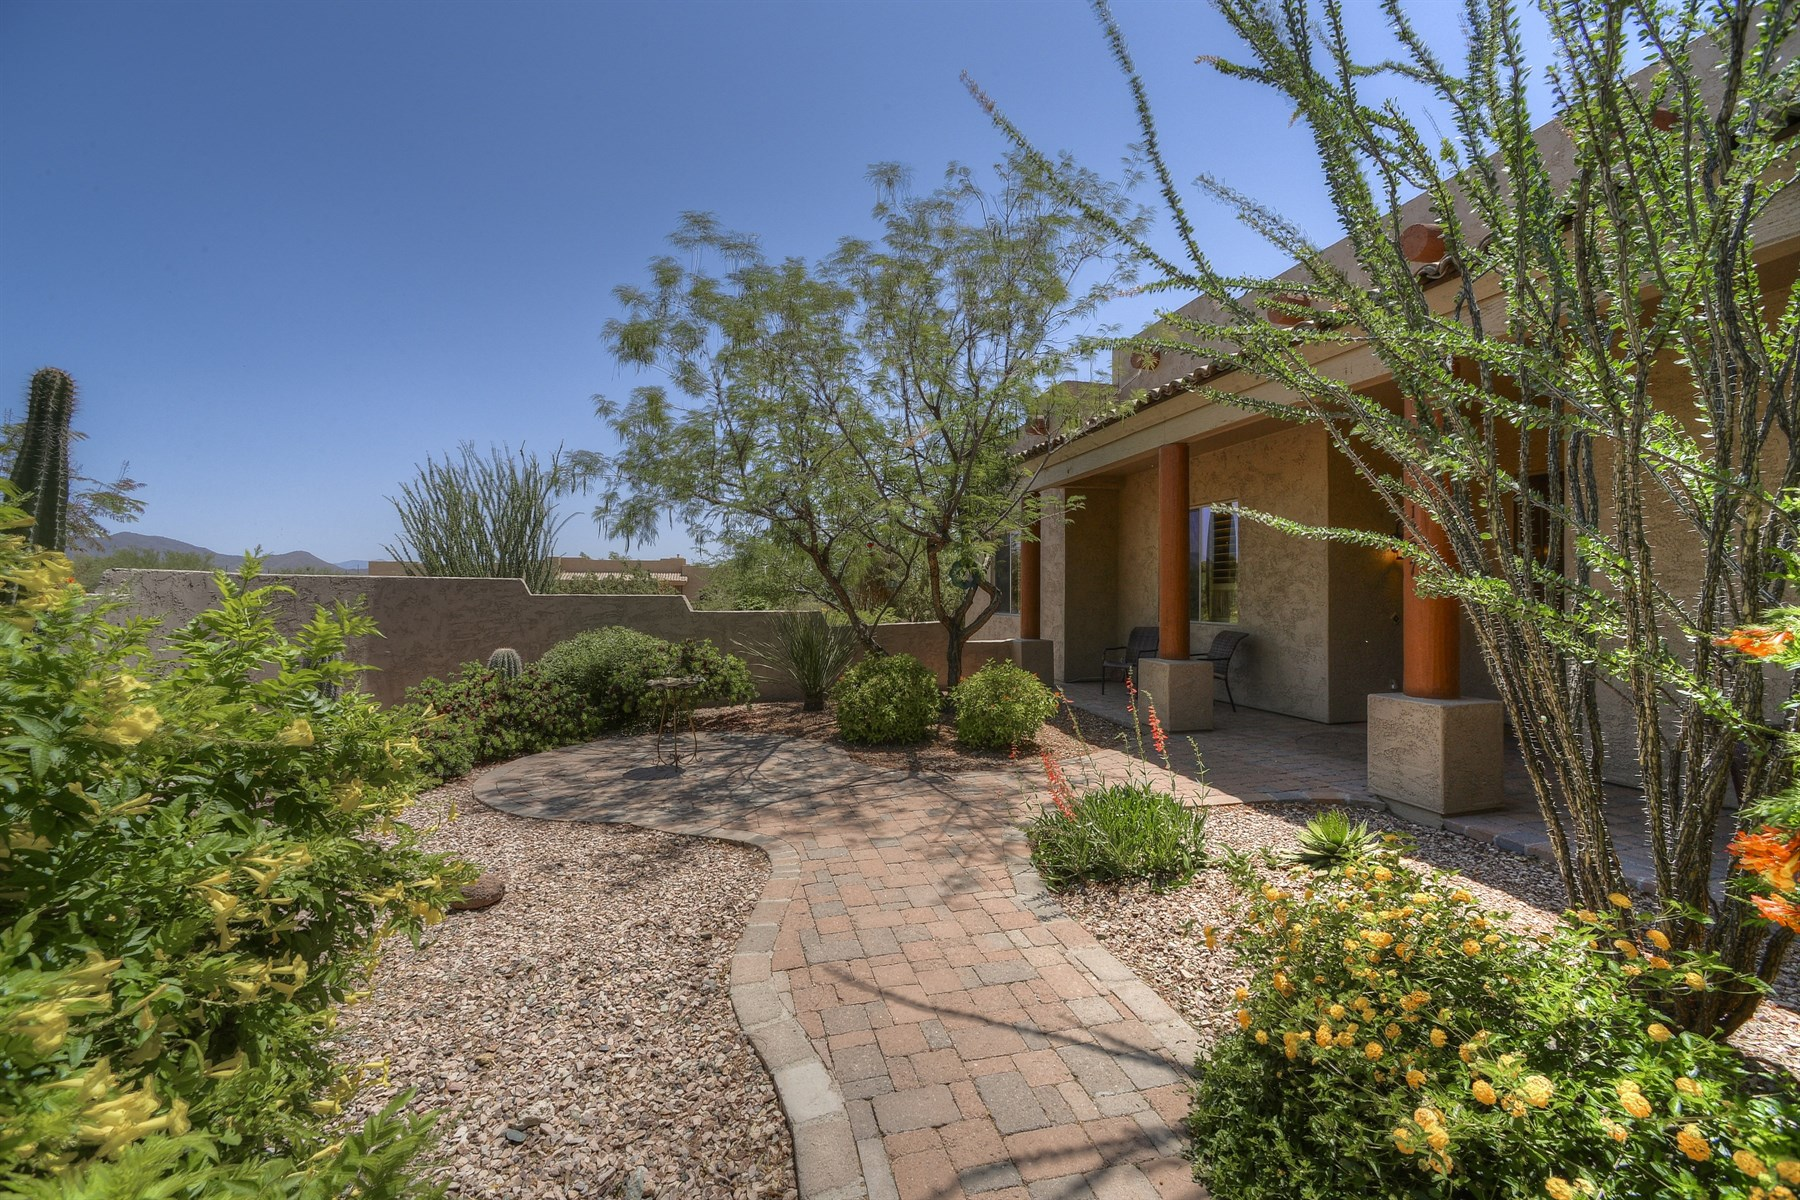 Casa Unifamiliar por un Venta en Beautiful single level home 1327 W Lavitt Ln Phoenix, Arizona, 85086 Estados Unidos